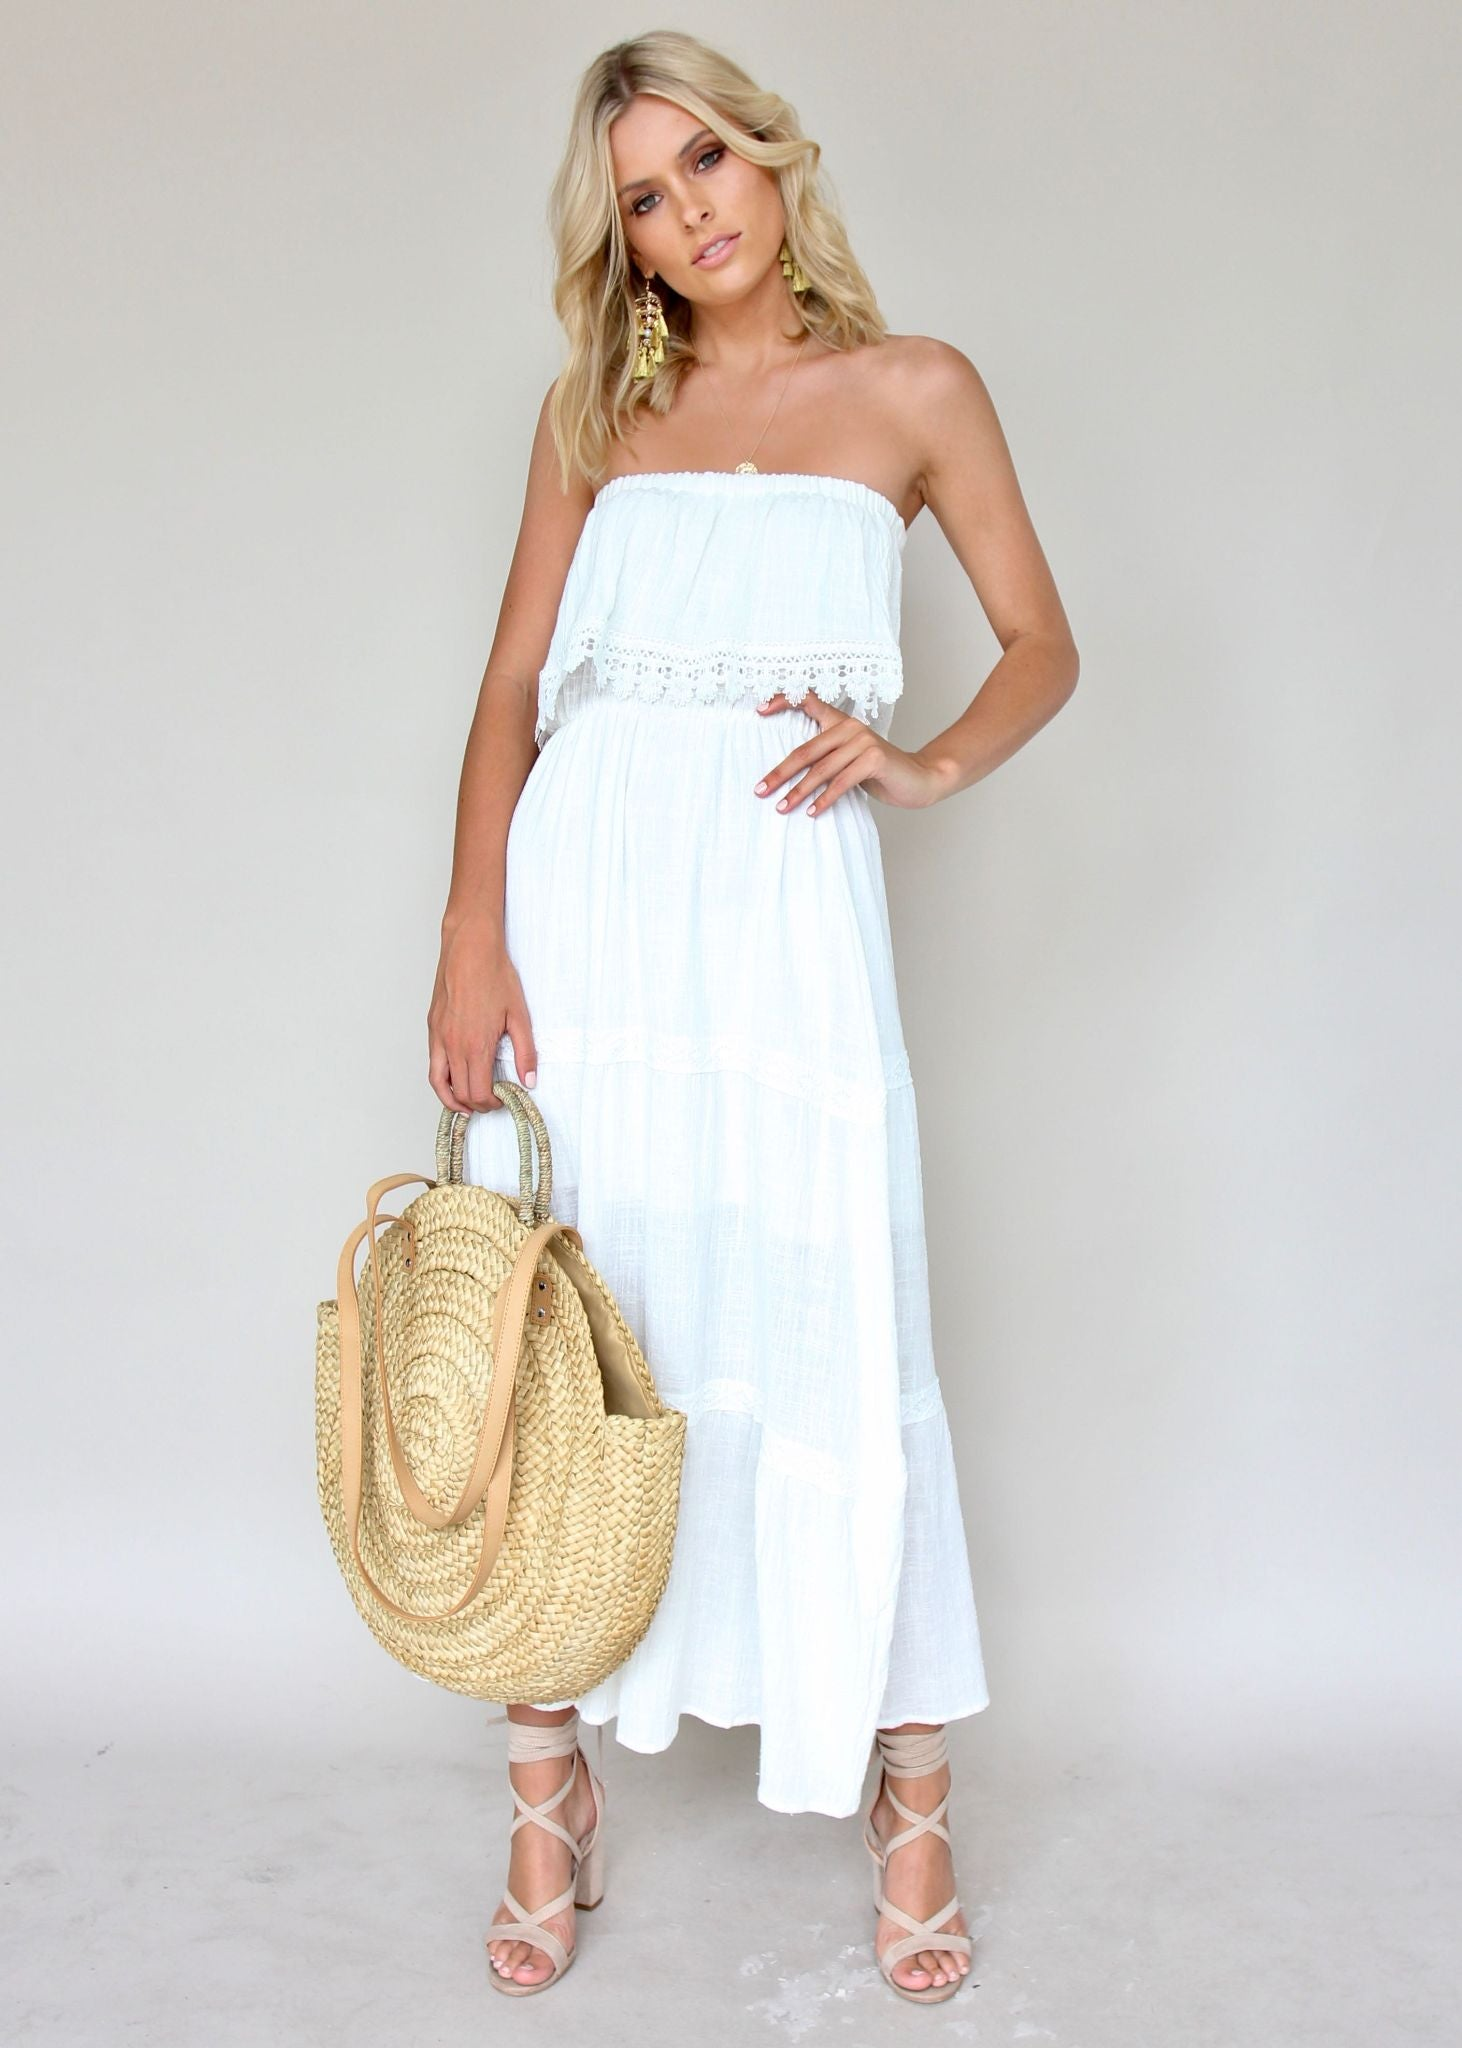 Loved & Adorned Maxi Dress - White